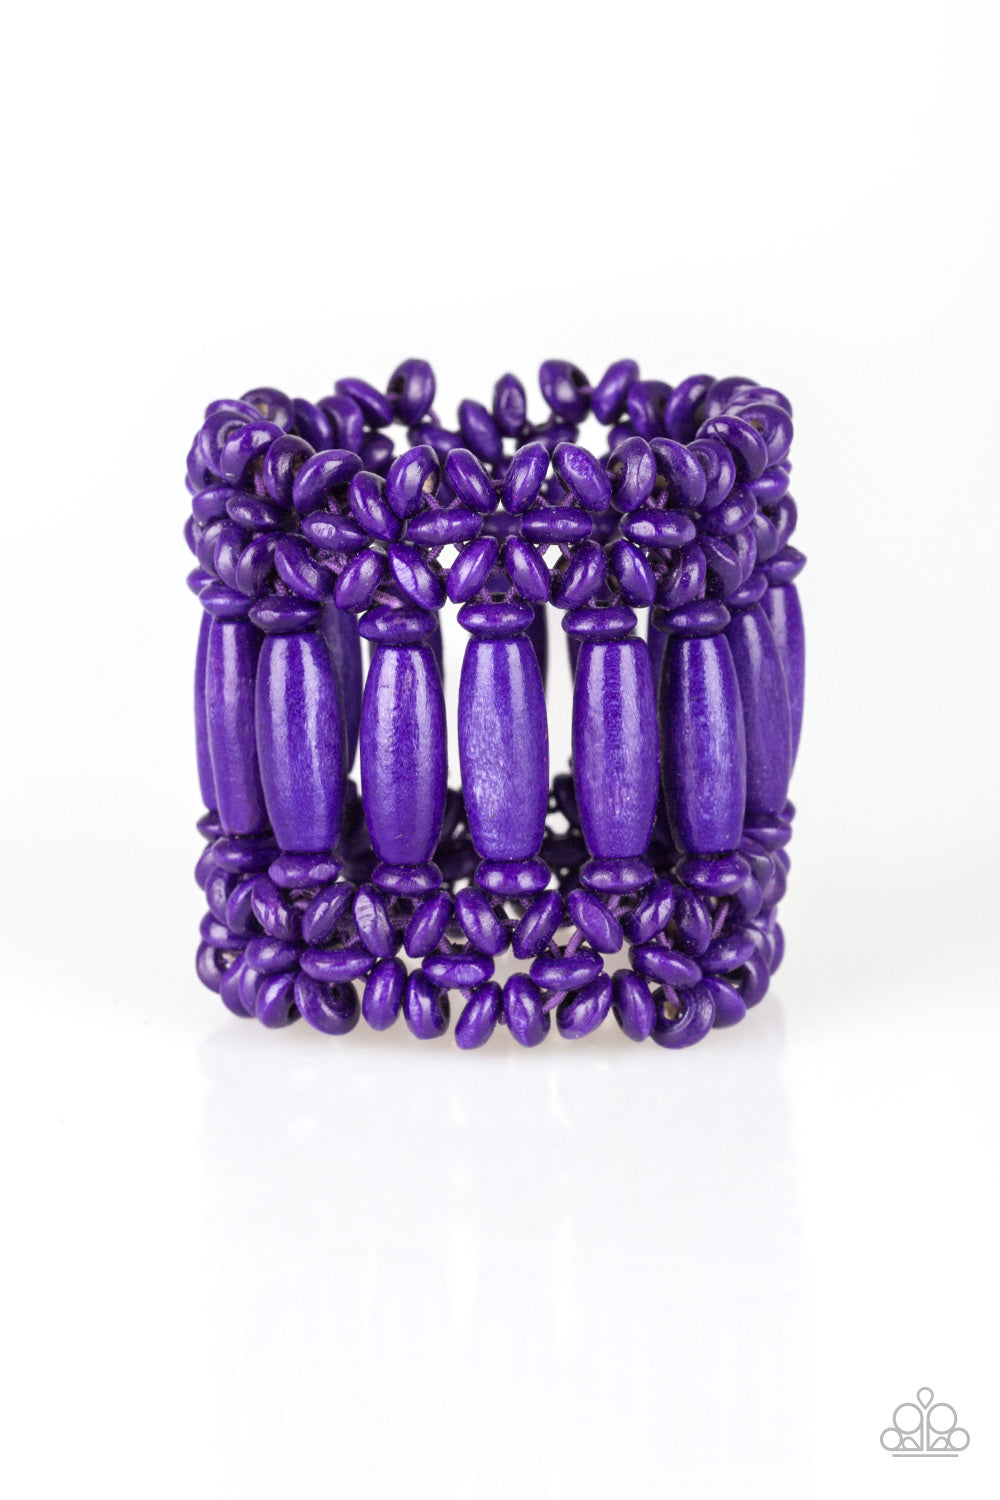 Paparazzi Accessories - Barbados Beach Club | Purple Wood Bead | Paparazzi Bracelet - Bracelets